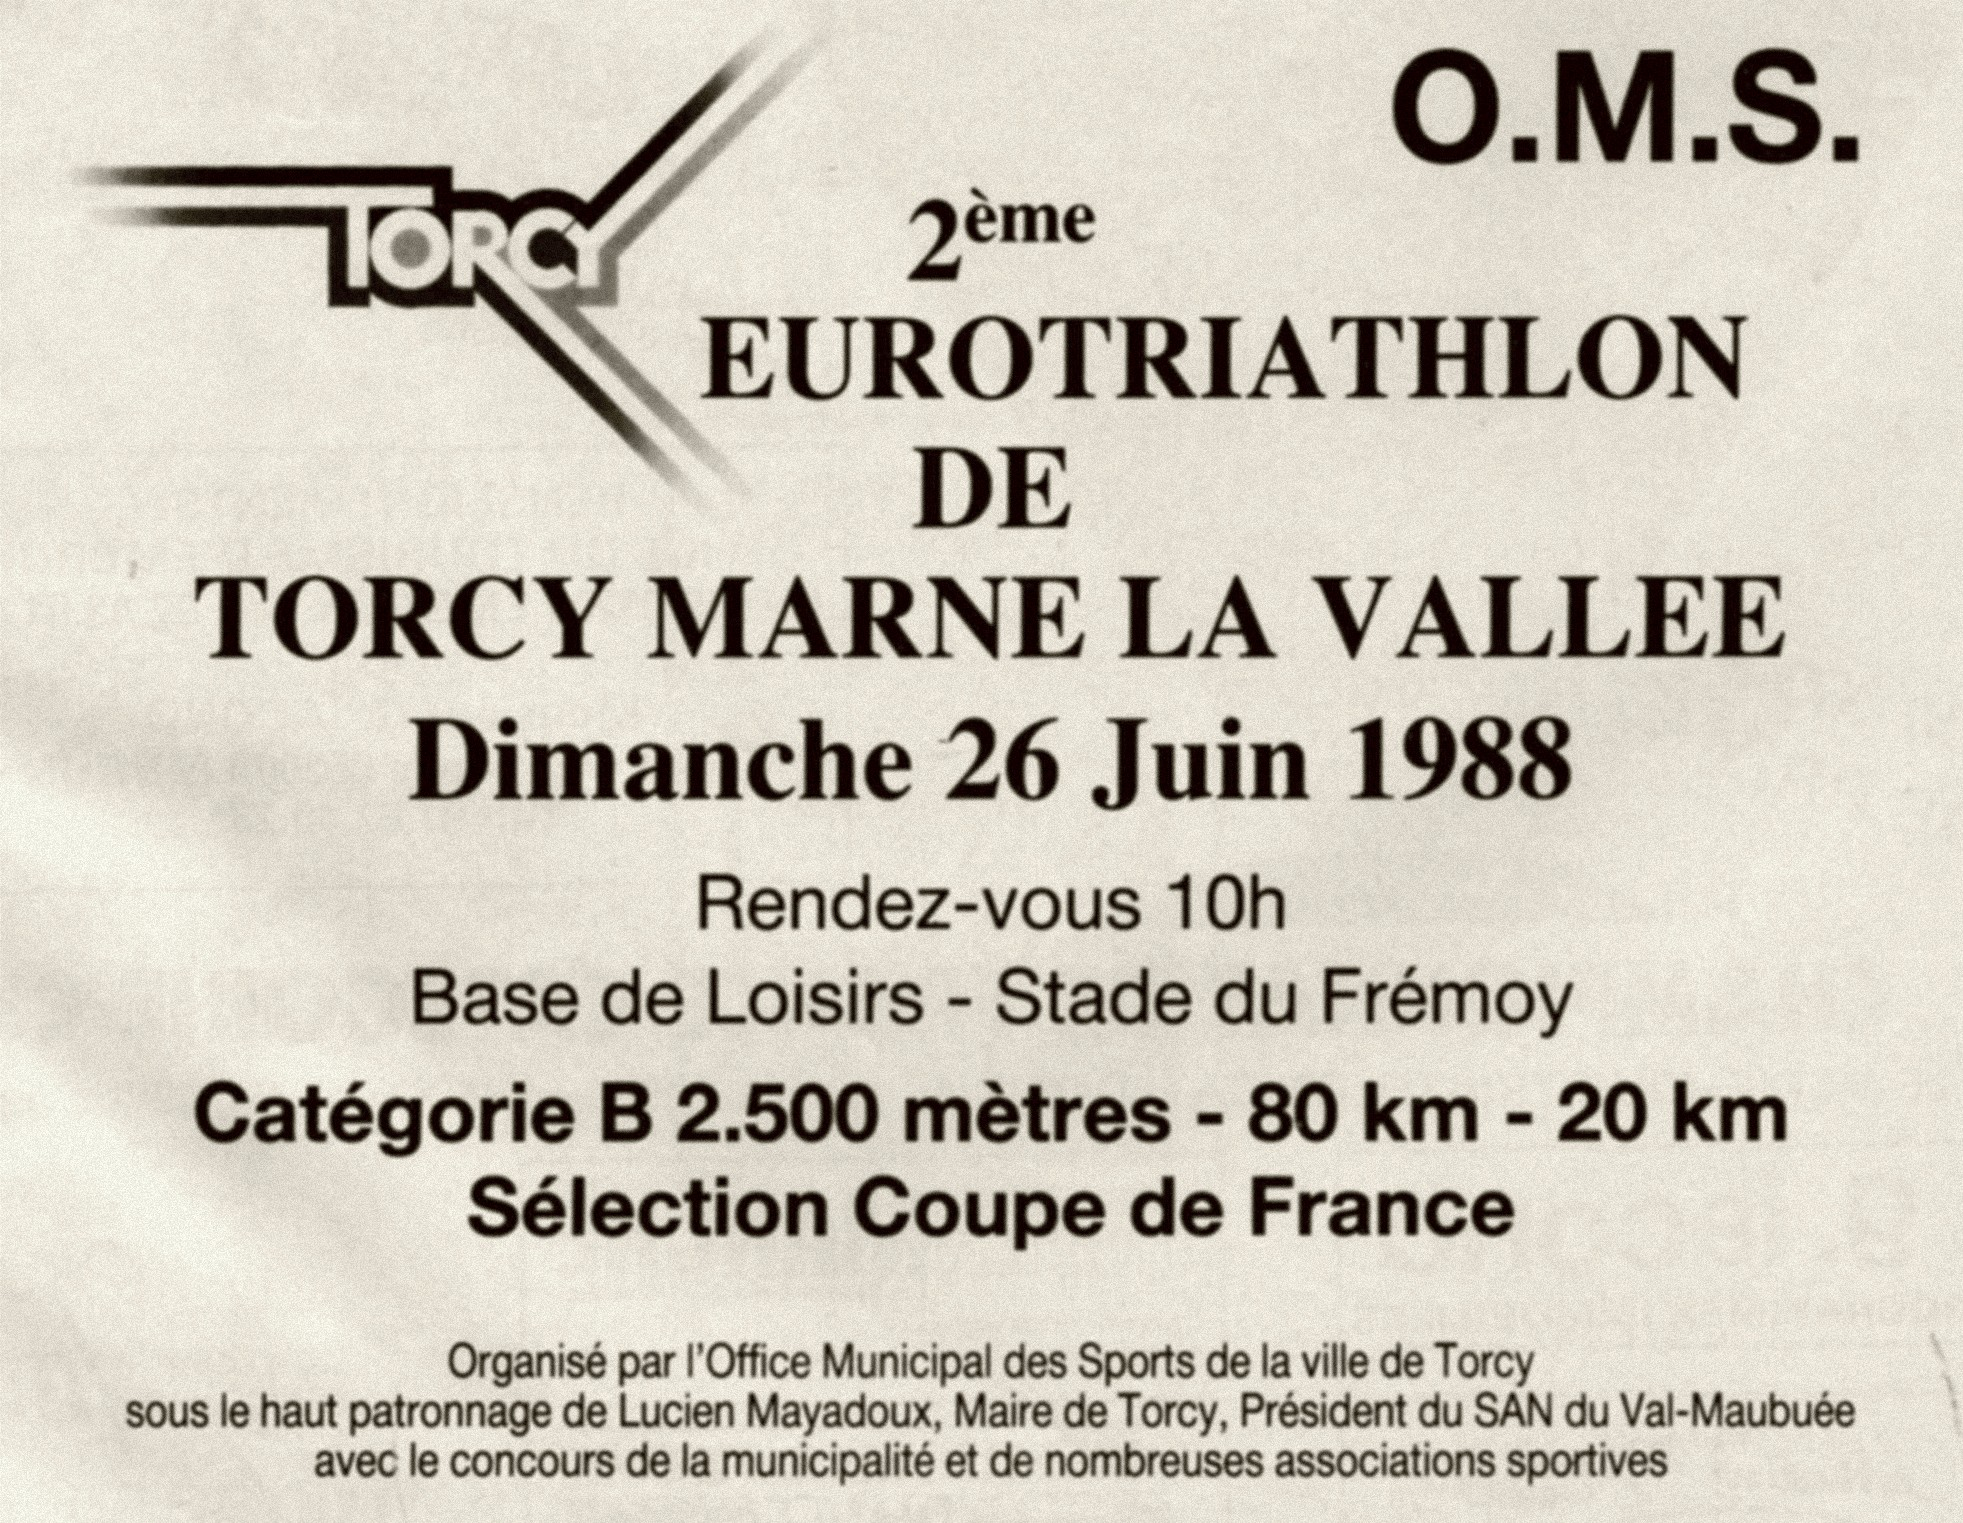 img962_26-06-1988_TORCY